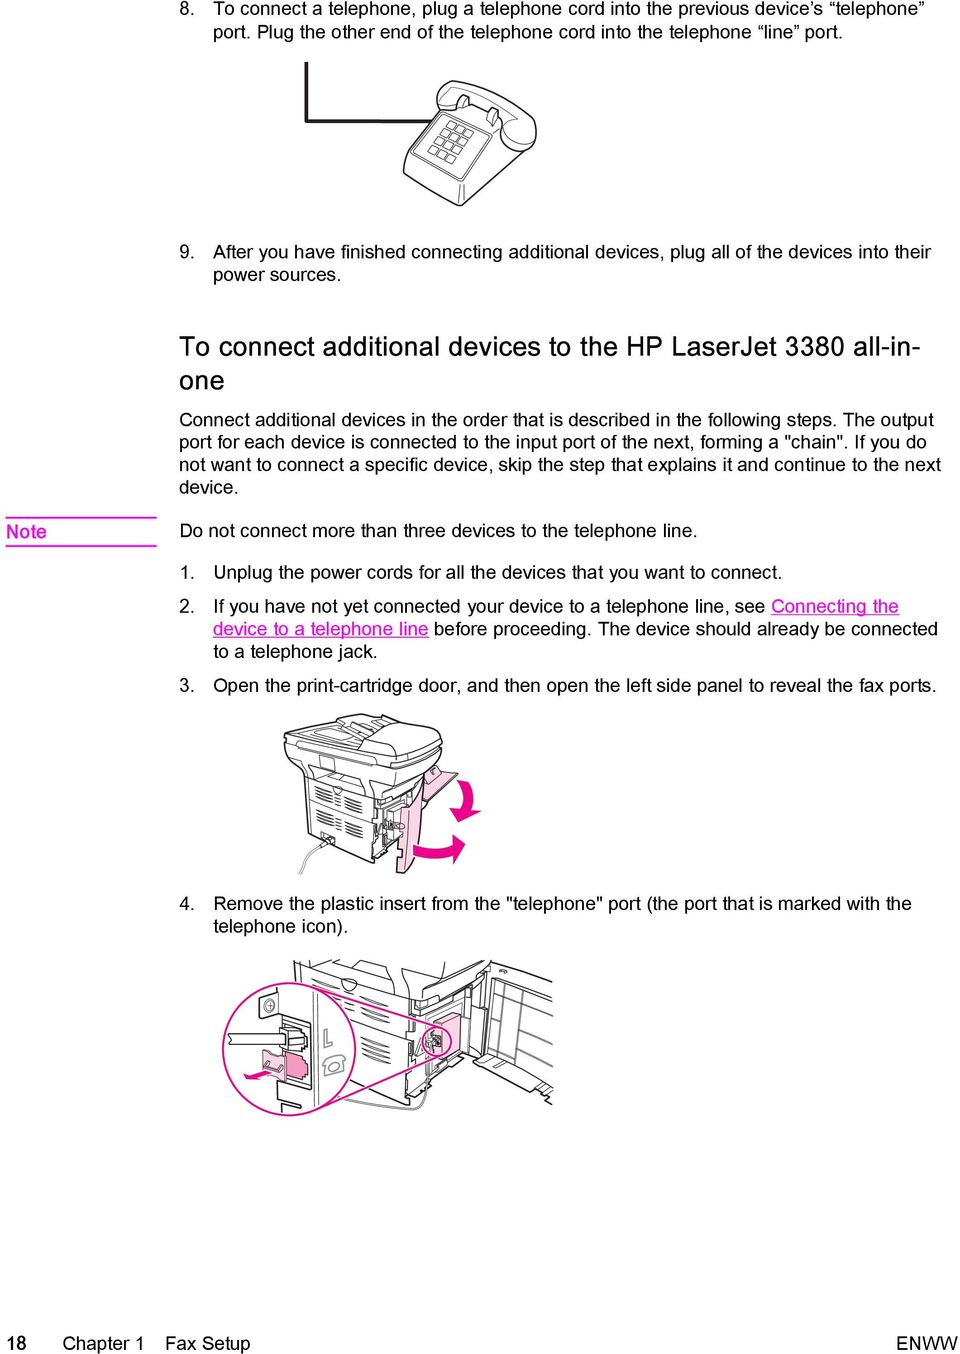 To connect additional devices to the HP LaserJet 3380 all-inone Connect additional devices in the order that is described in the following steps.